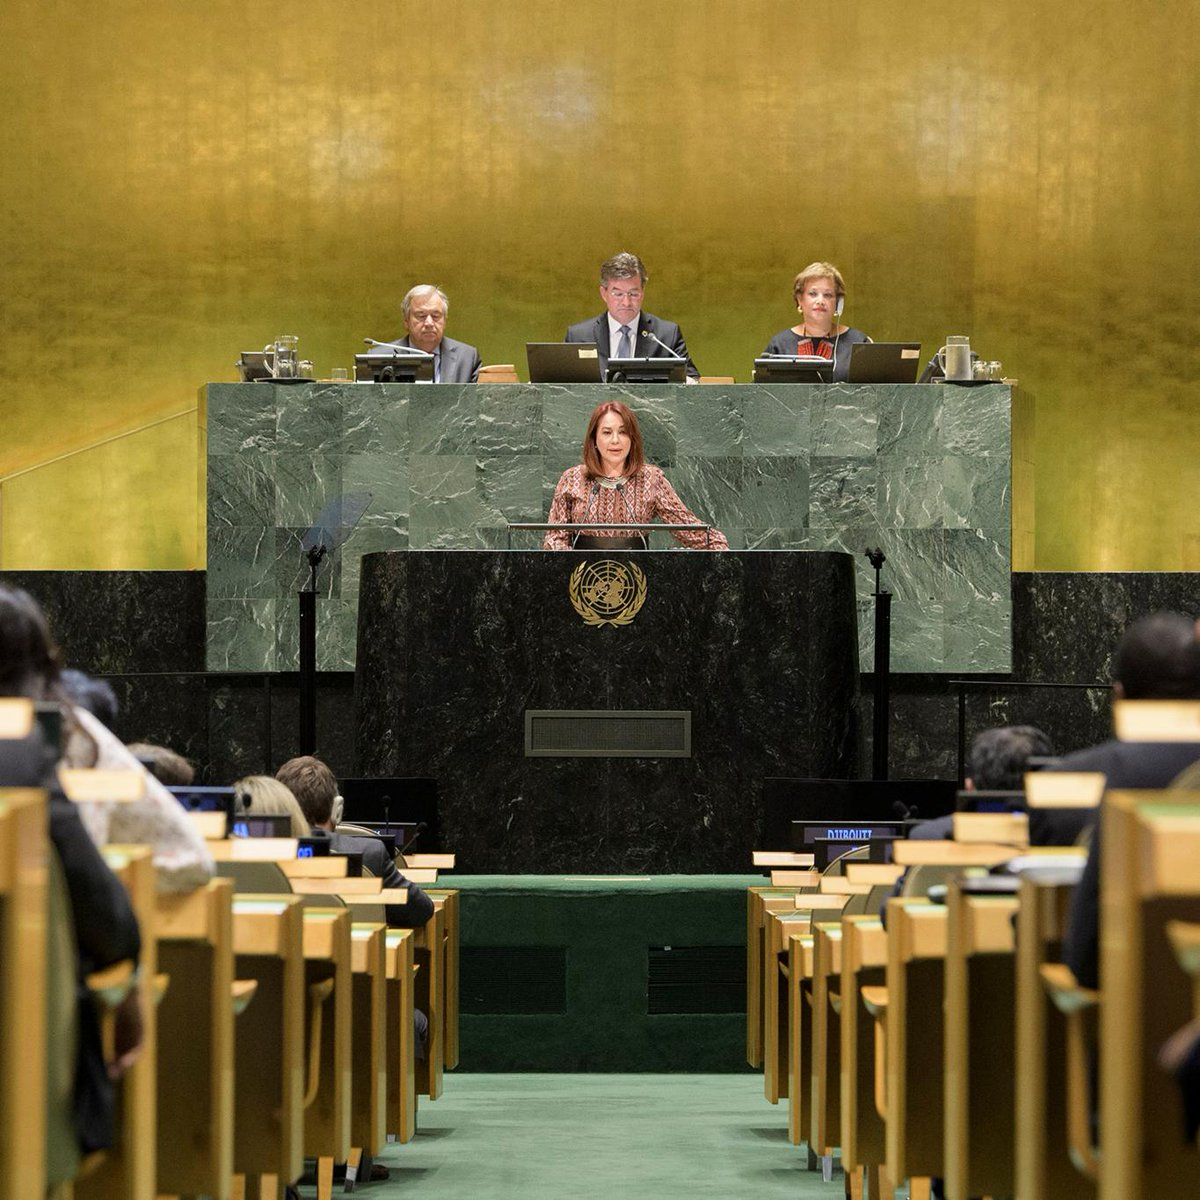 I am extremely proud to be the first woman, Latin American Caribbean woman, to have the privilege to lead the General Assembly. -- @mfespinosaEC of Ecuador, the new @un_pga of the 73rd session. bit.ly/2NOZIwN